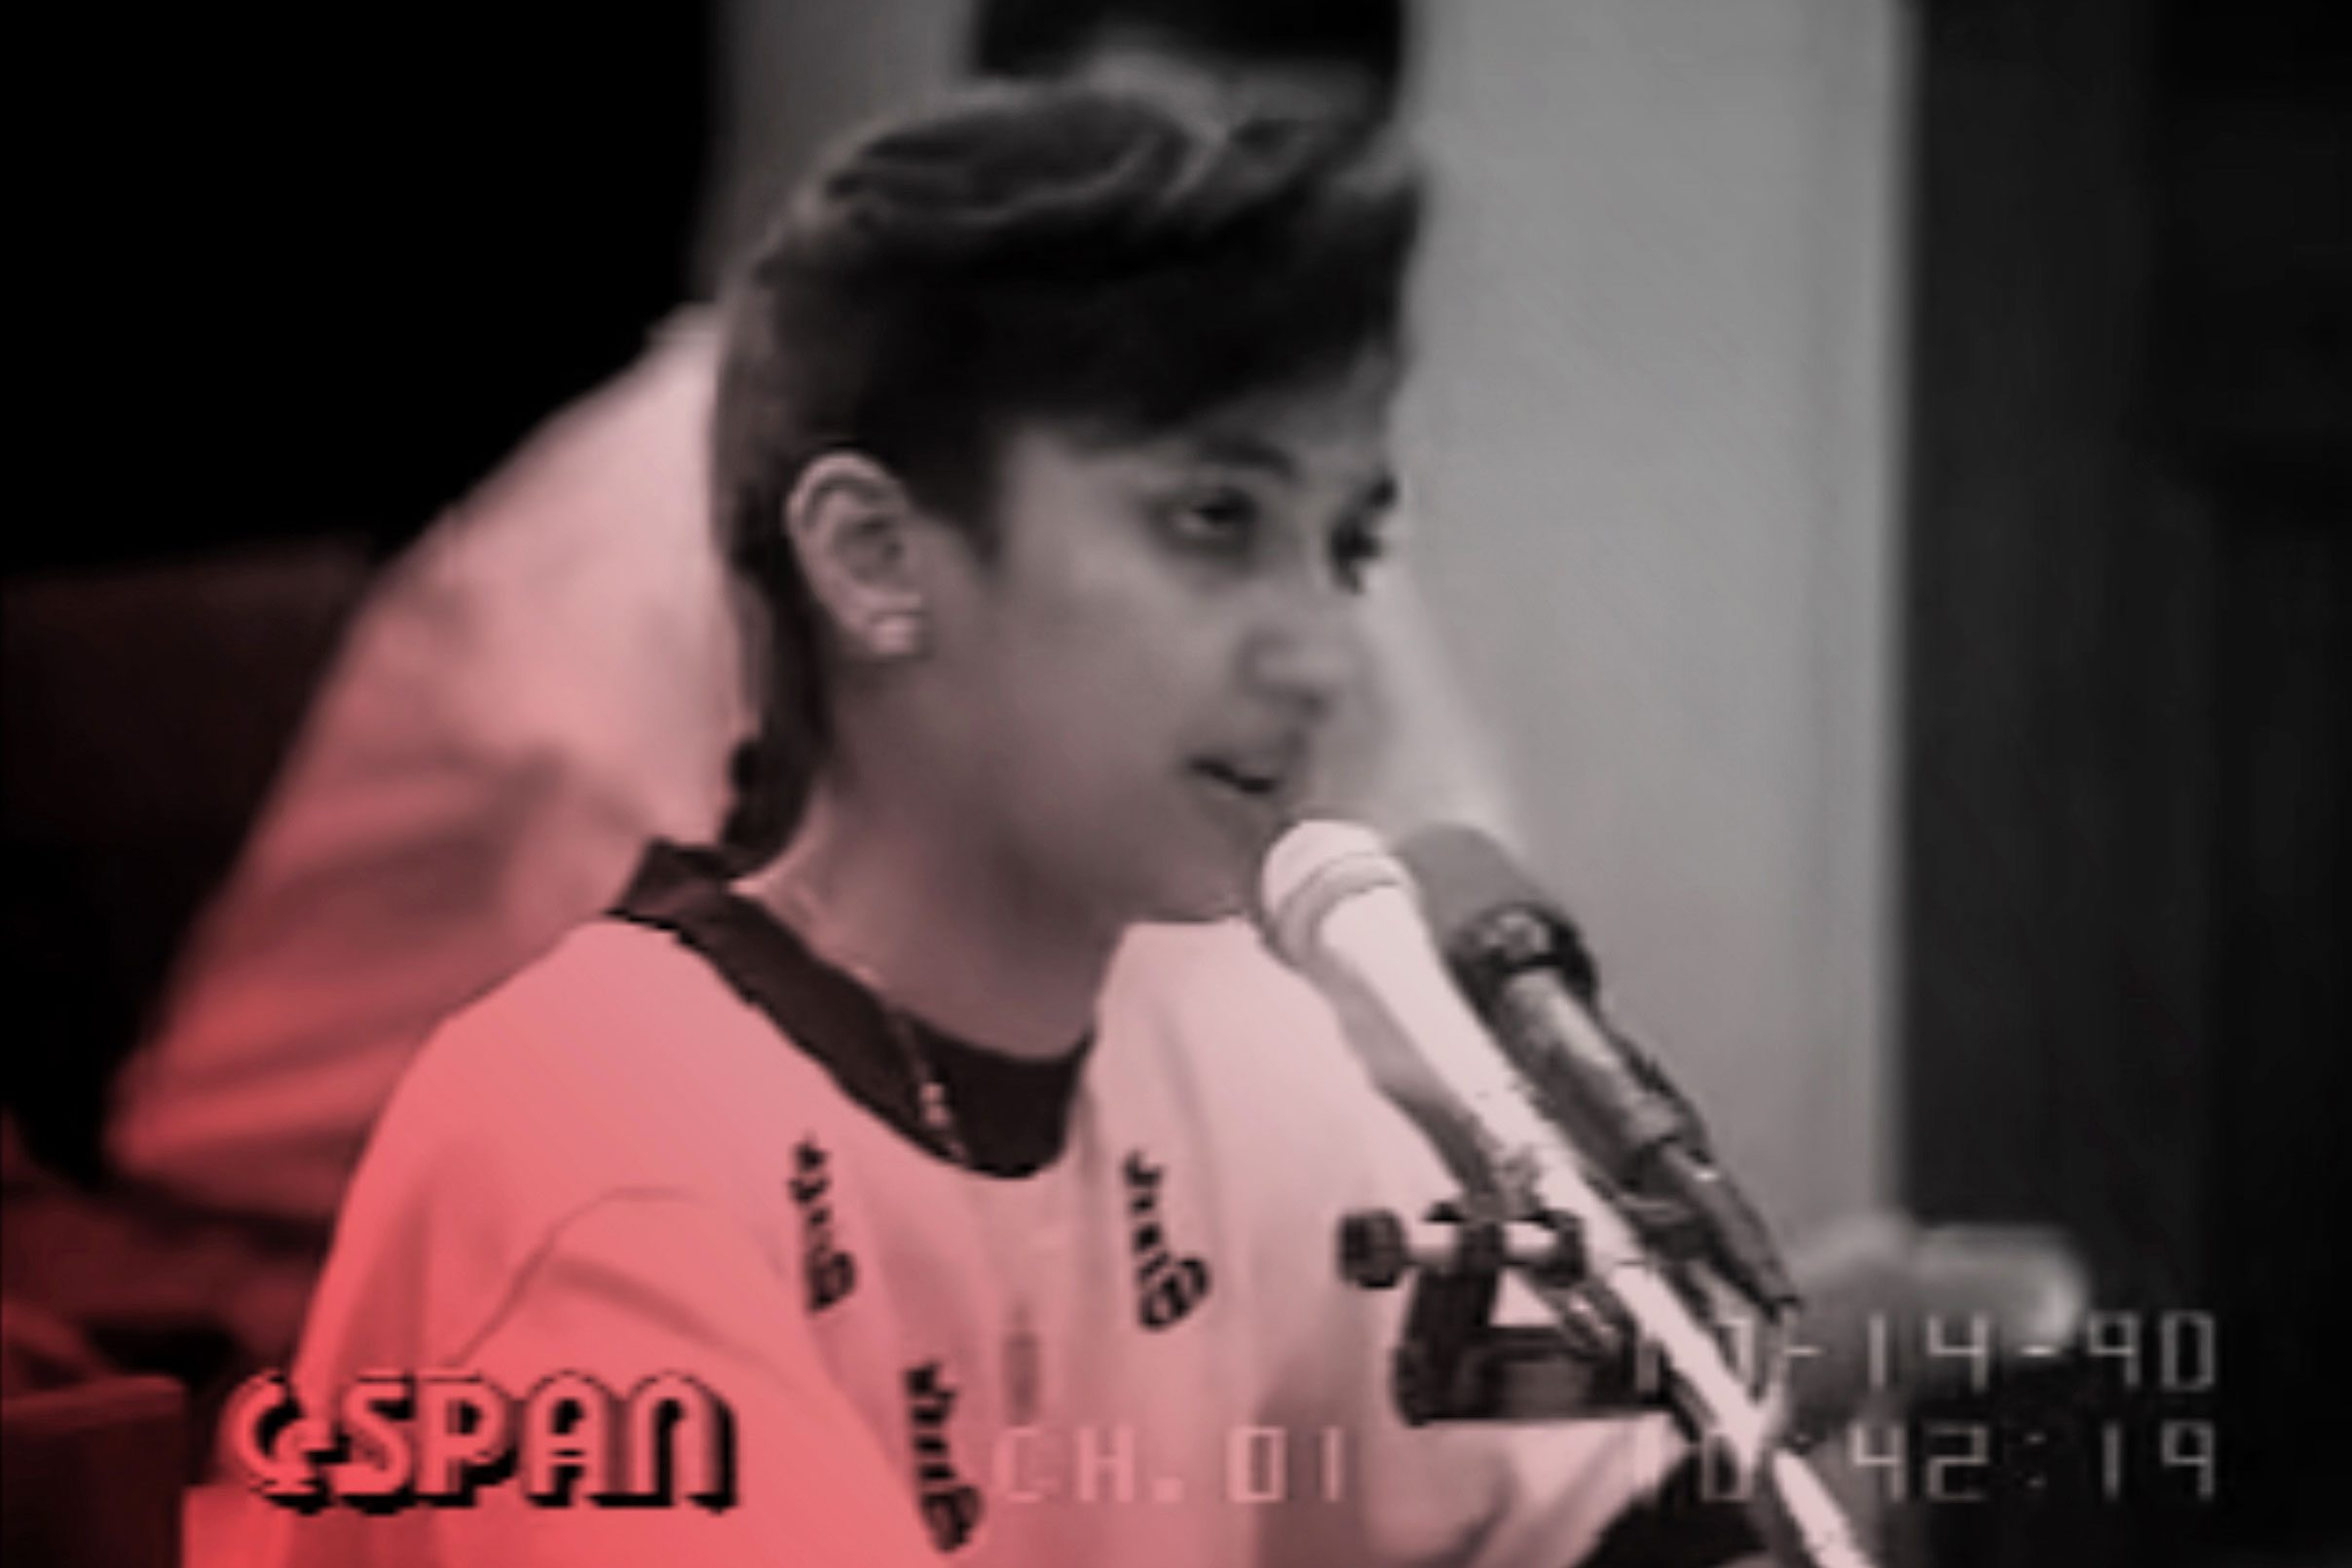 C-SPAN screencapture of 15-year-old Nayirah delivering her testimony to the Congressional Human Rights Caucus